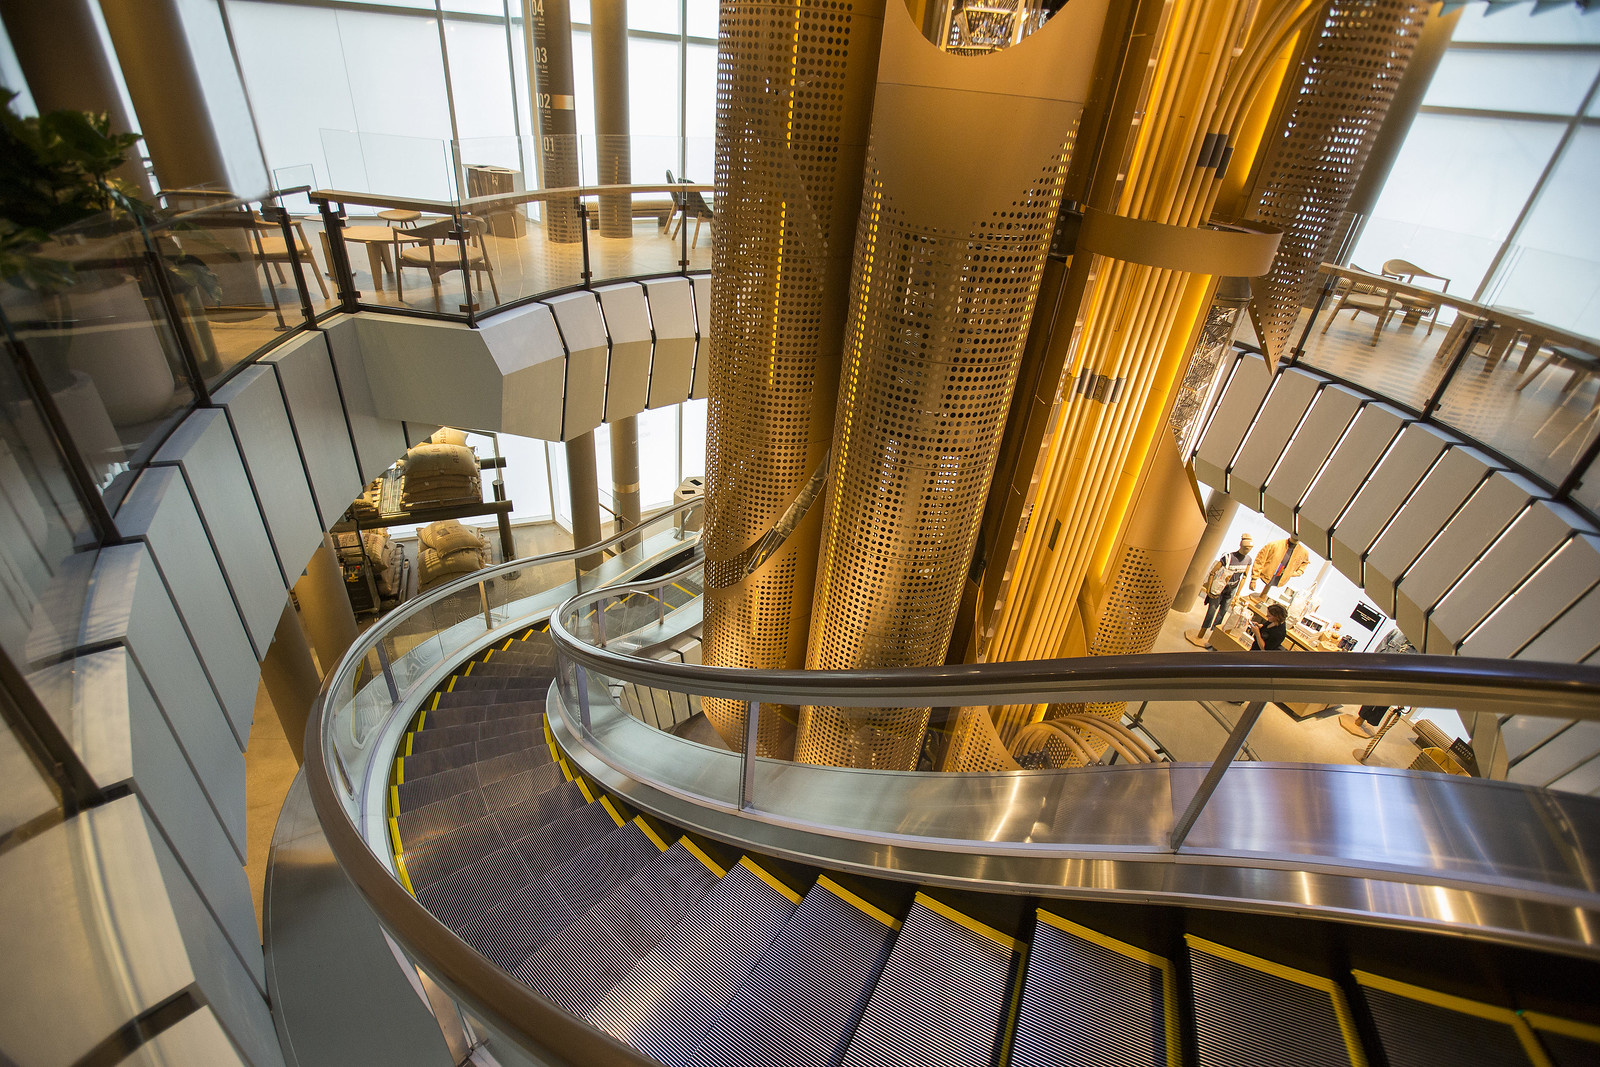 Large brass tubes filled with coffee beans and surrounded by a circular escalator.